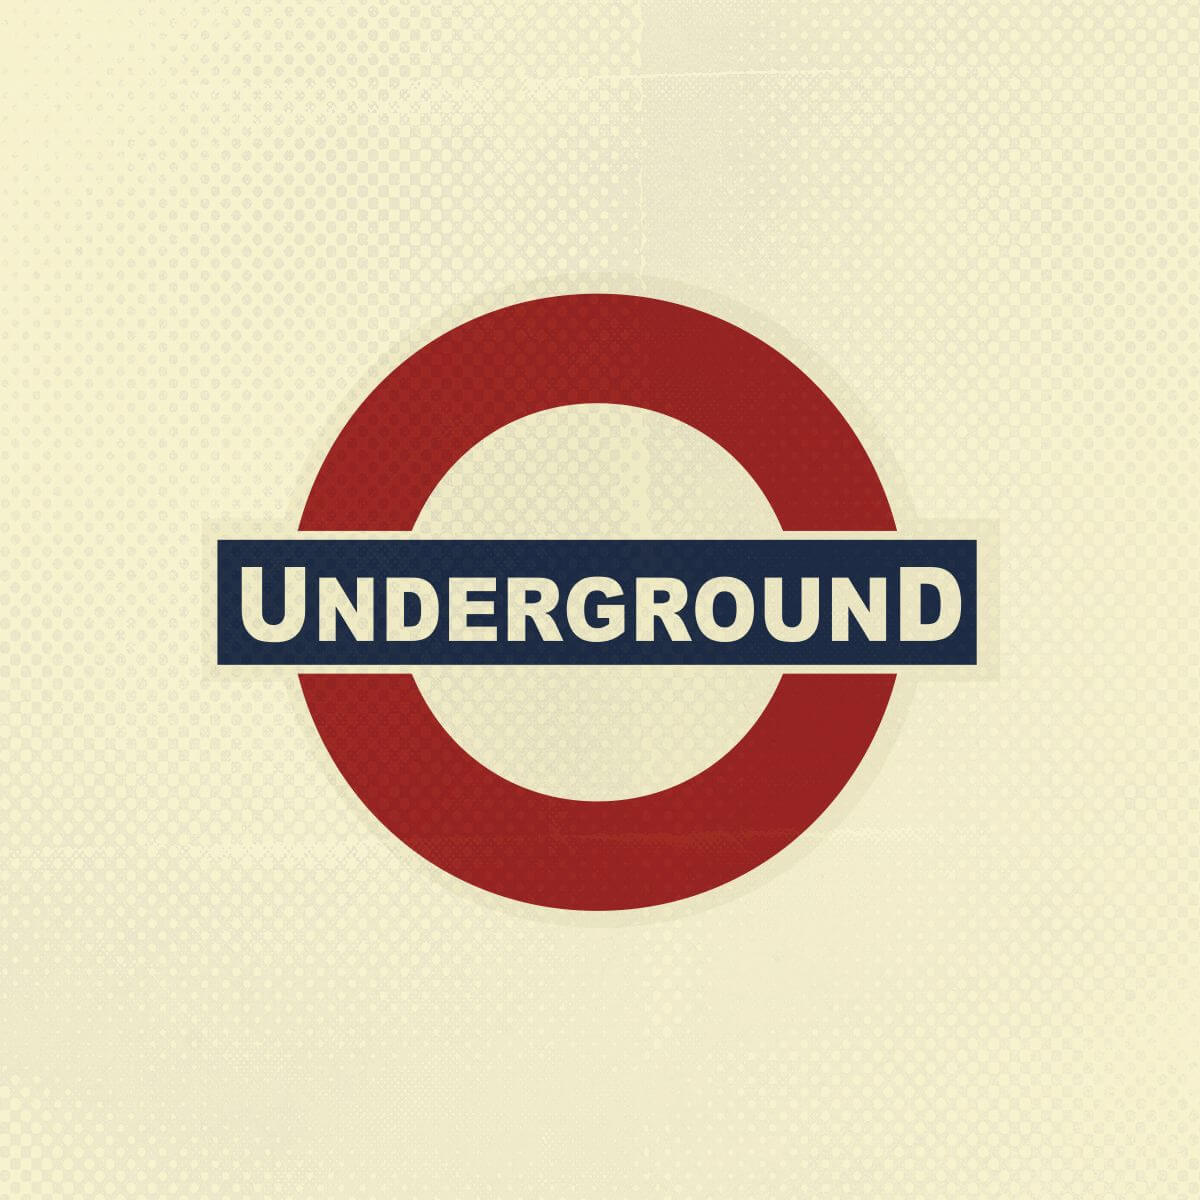 Logo Design and Branding by Stellen Design Hermosa Beach for Underground Pub